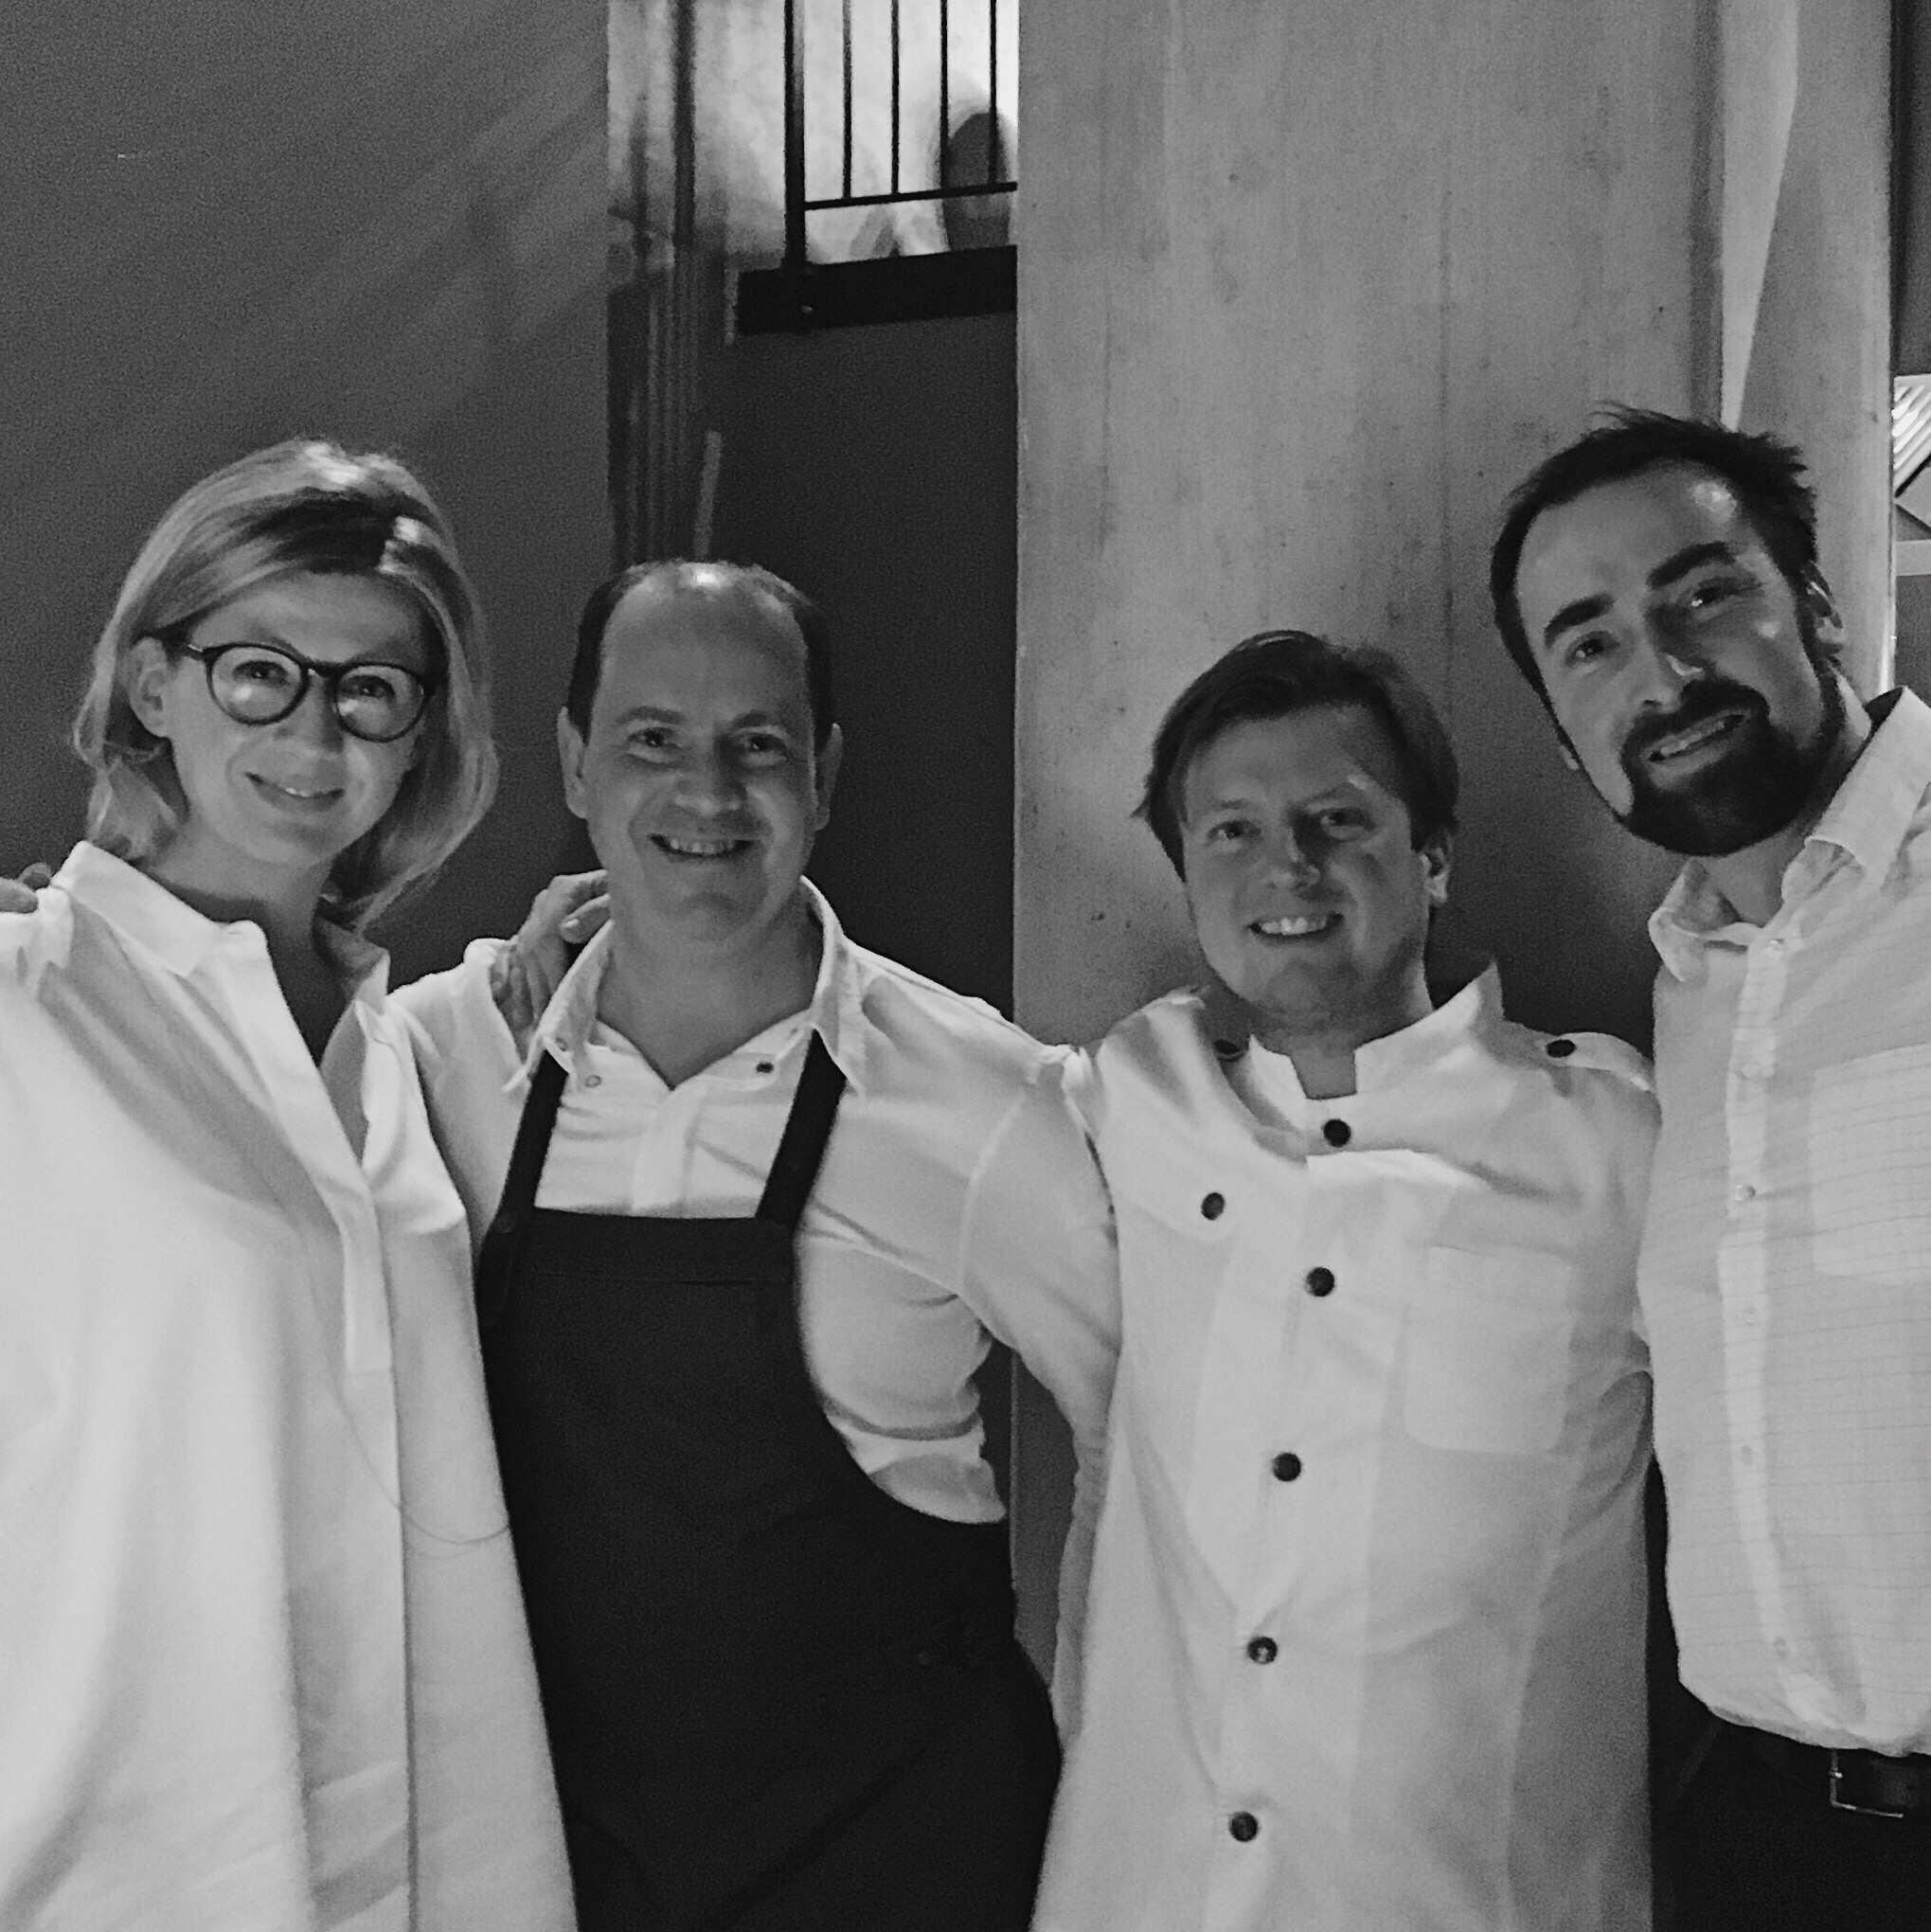 """Great evening with awesome food and fantastic wine recommendation at """"The Table"""" in Hamburg with Kevin Fehling and David Eitel."""